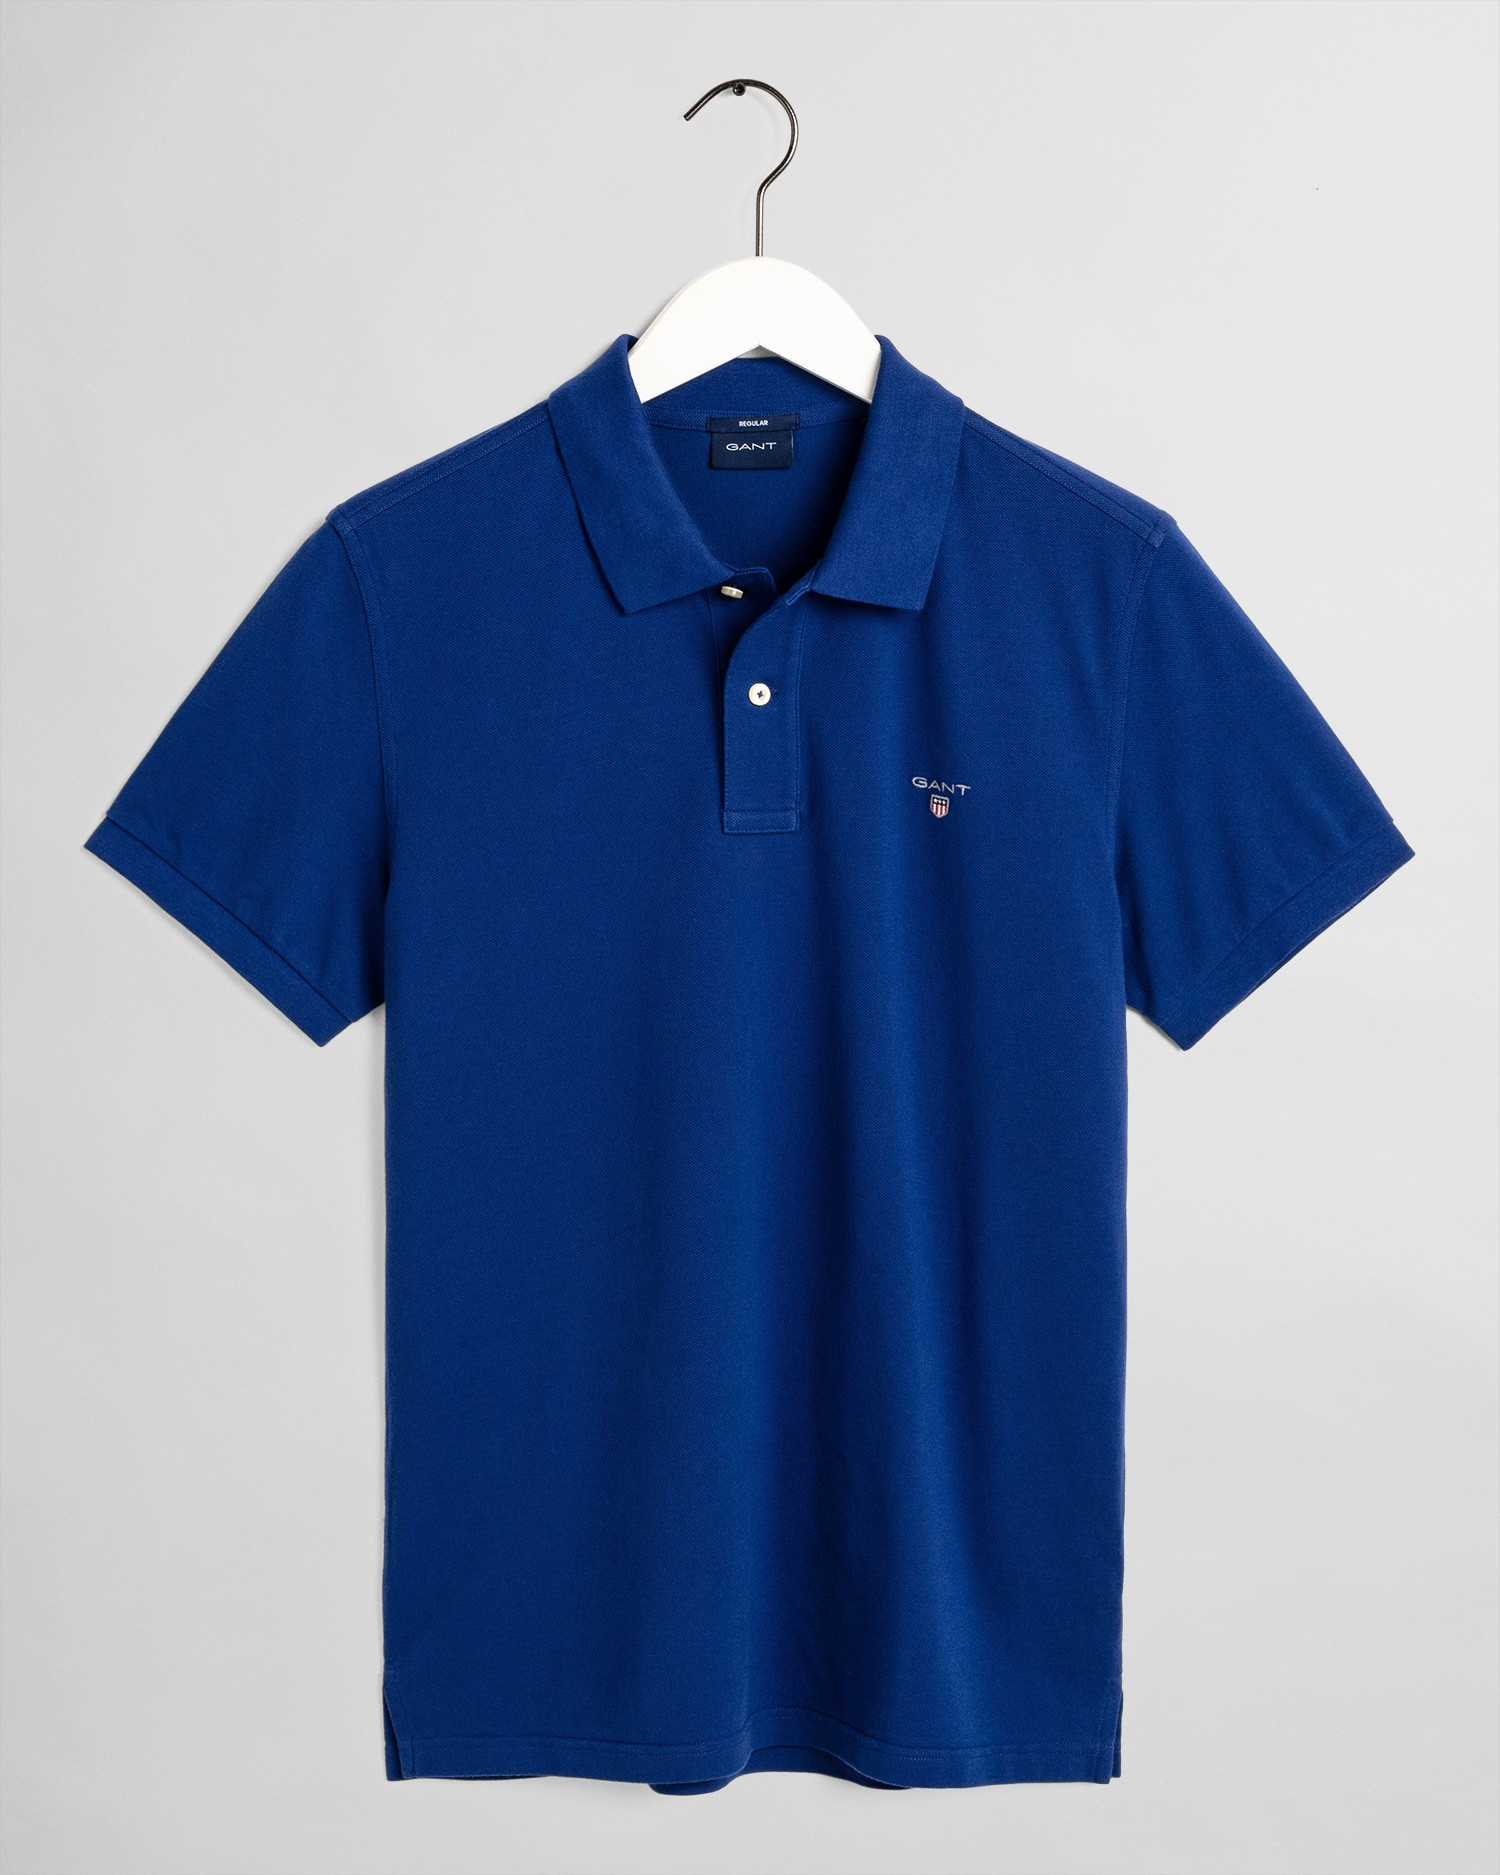 Original Rugger Polo - 2201